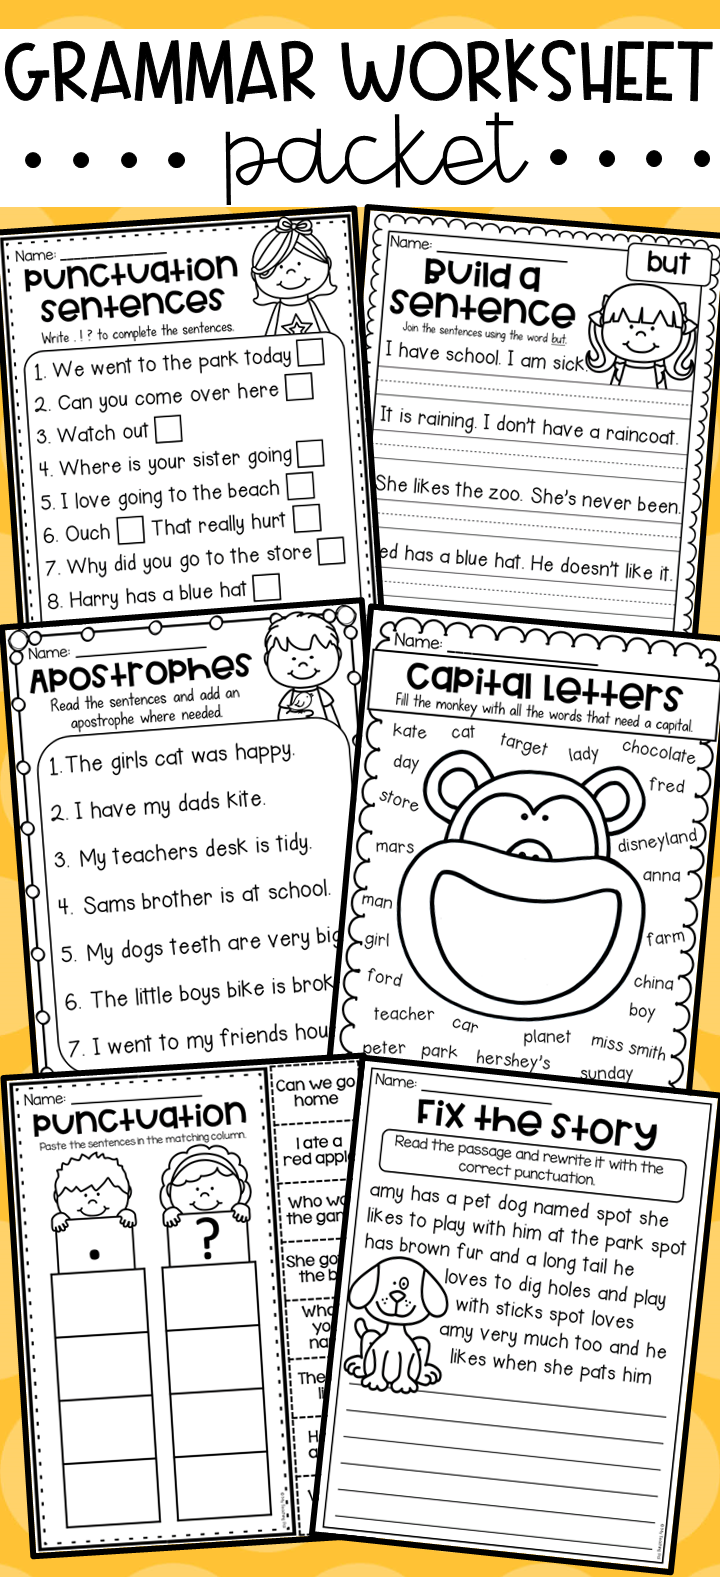 hight resolution of Grammar worksheets for punctuation